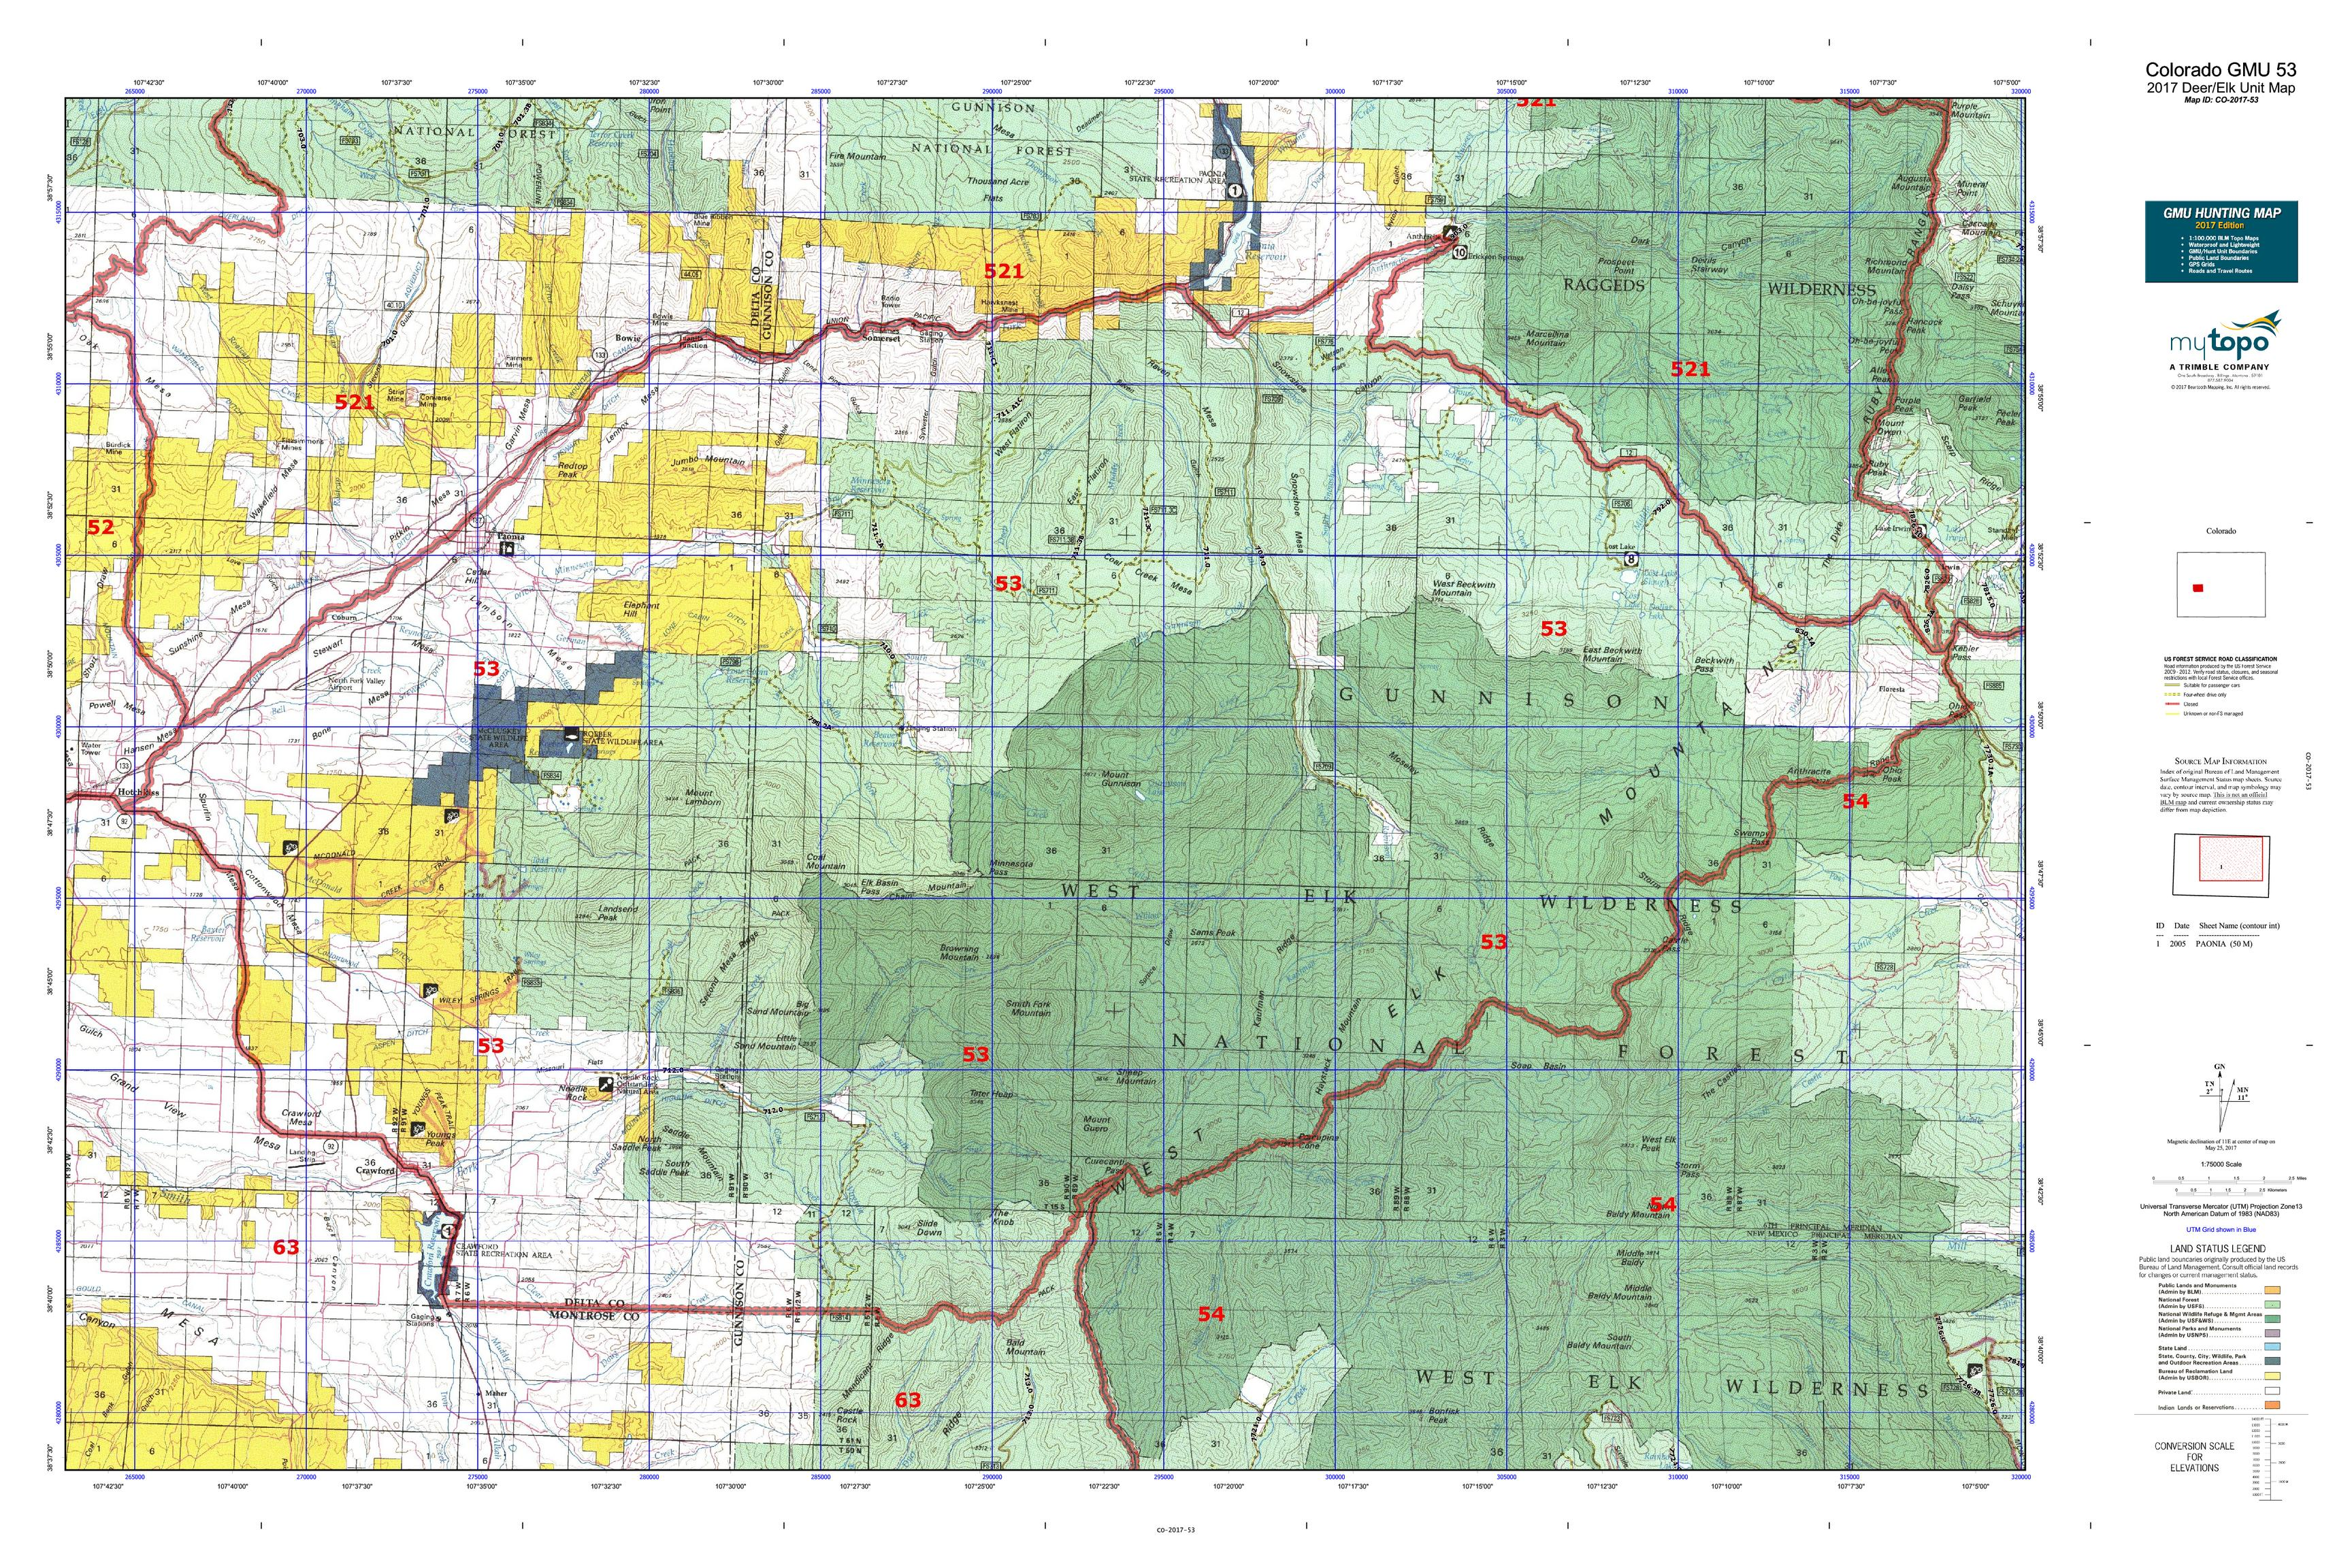 montana public hunting land map with Hunt Area Unit on File Map of states showing population density in 2013 further Opening Up More Pennsylvania Elk Country likewise Best Spots For Bowhunting Kansas Trophy Bucks in addition Best Elk Units In Montana E7ORhaFdgLugCk21SA3VLC e1JZBrQRR4HF63Fsdm2o as well Wisconsin Atlas Gazetteer.